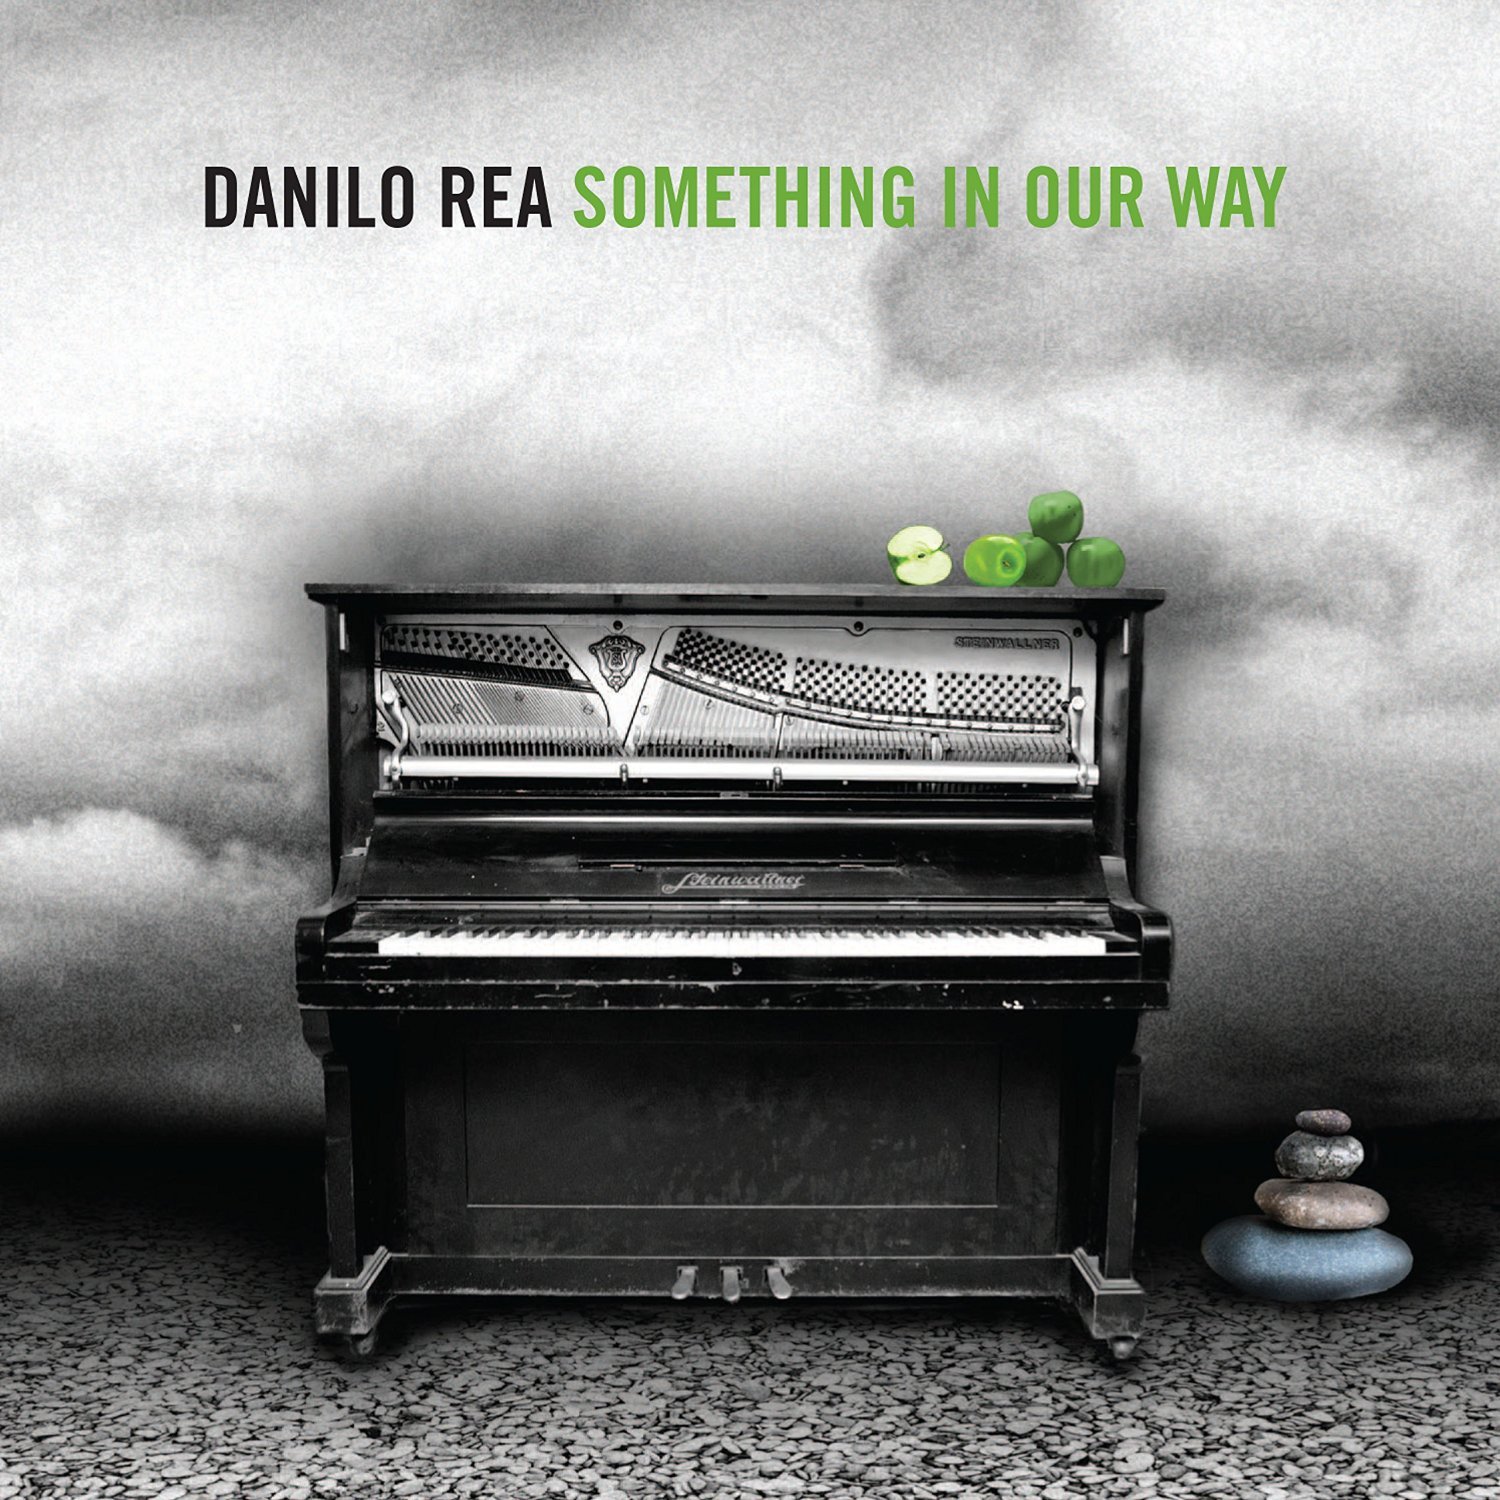 Danilo Rea</br>Something In Our Way</br>Warner, 2015